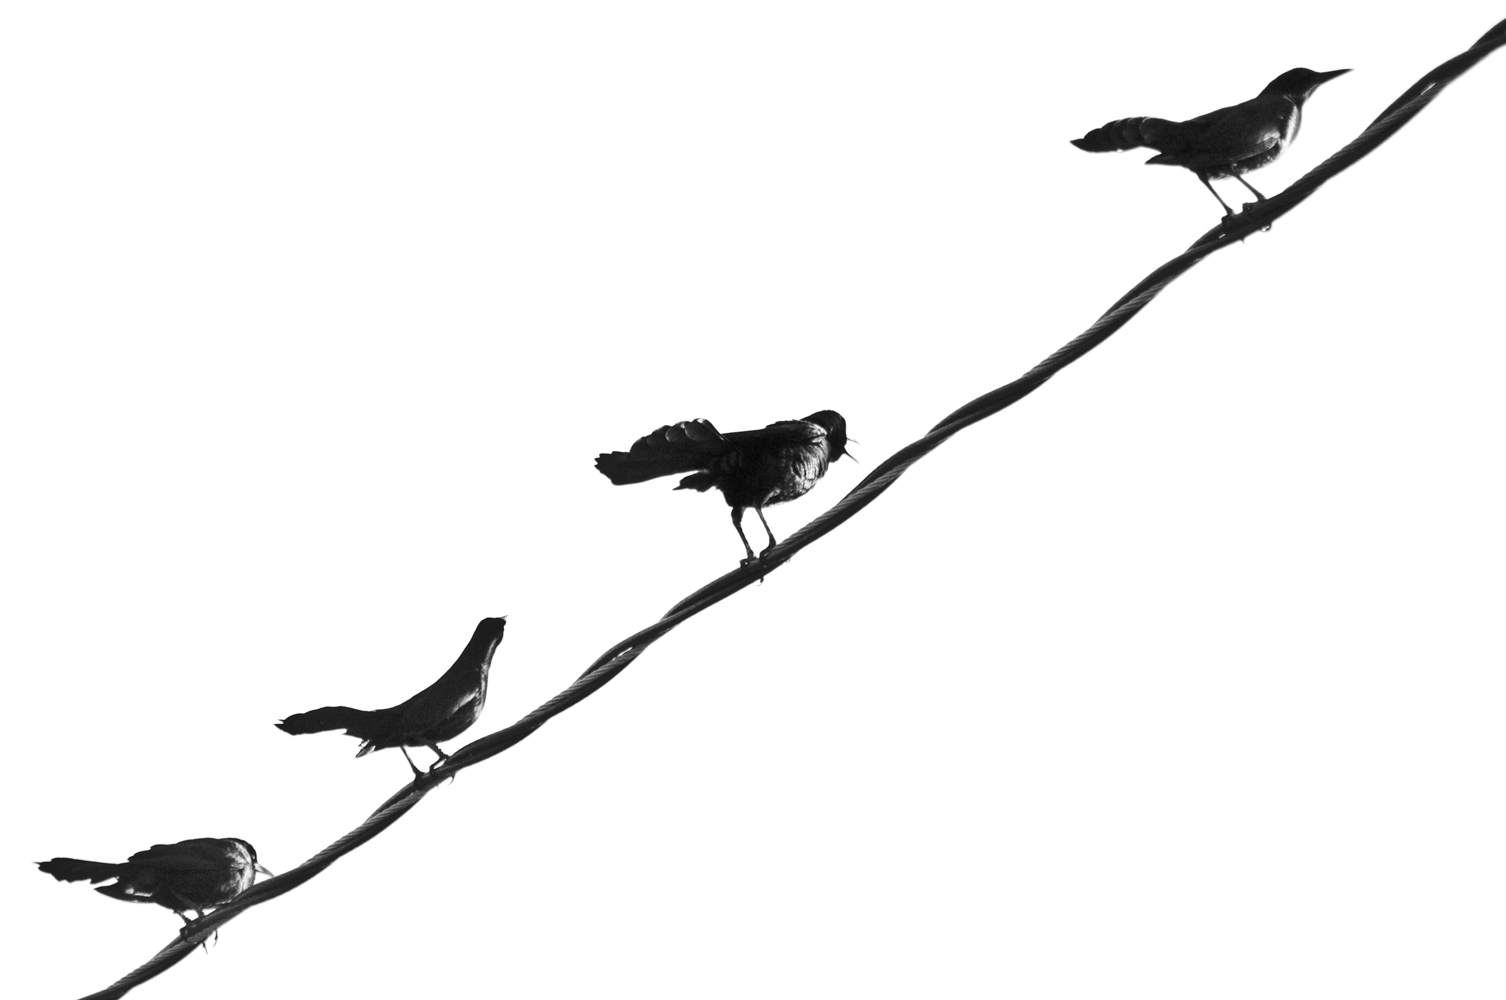 6 Pics On Wire Black Bird Center Crochetcircularedgepatterndiagram Birds A Lonely Personal And Travel Photography By Rh Grizzleemartin Com Silhouette Movie